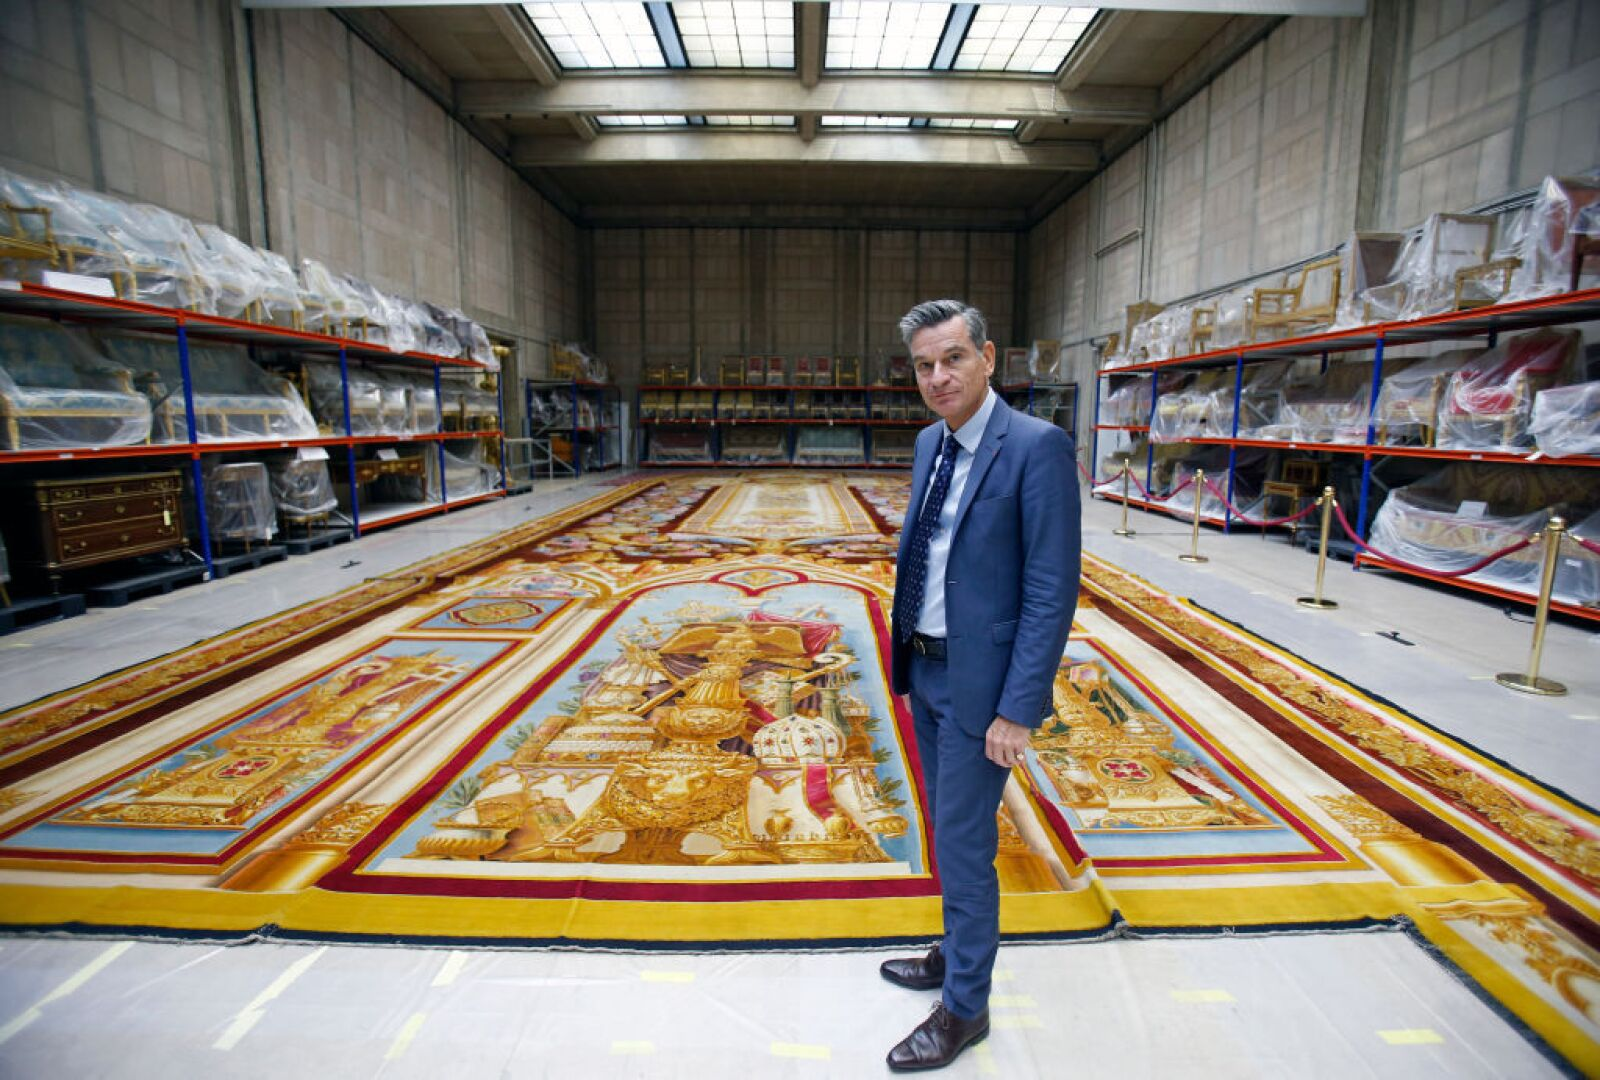 The Fire-damaged Carpet From The Notre Dame Cathedral Goes On Display Ahead Of Renovation